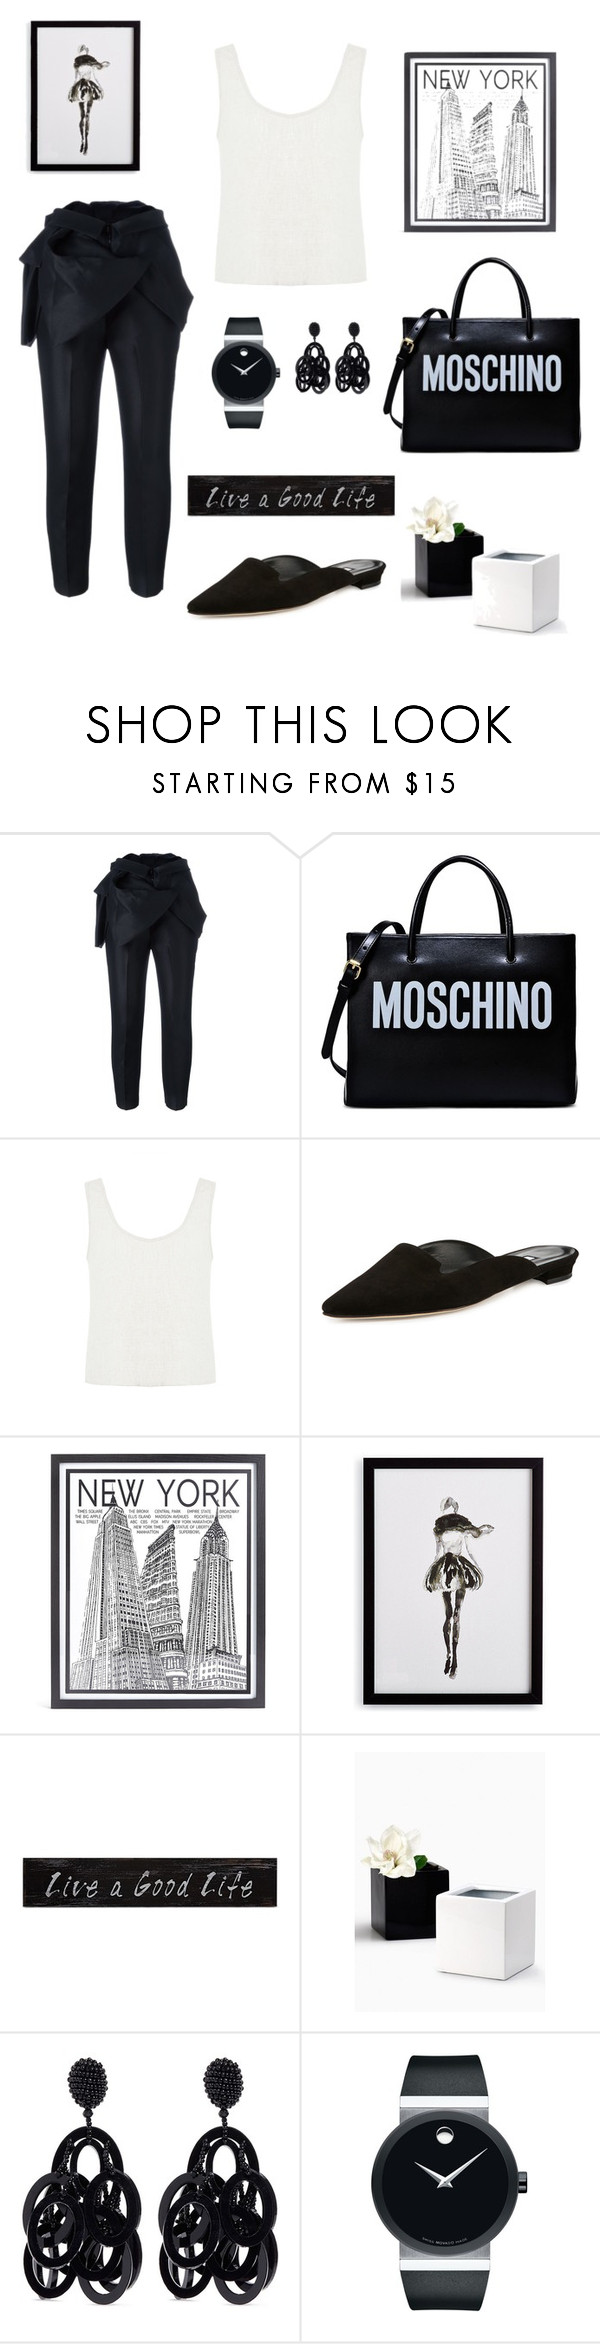 Pin en My Polyvore Finds